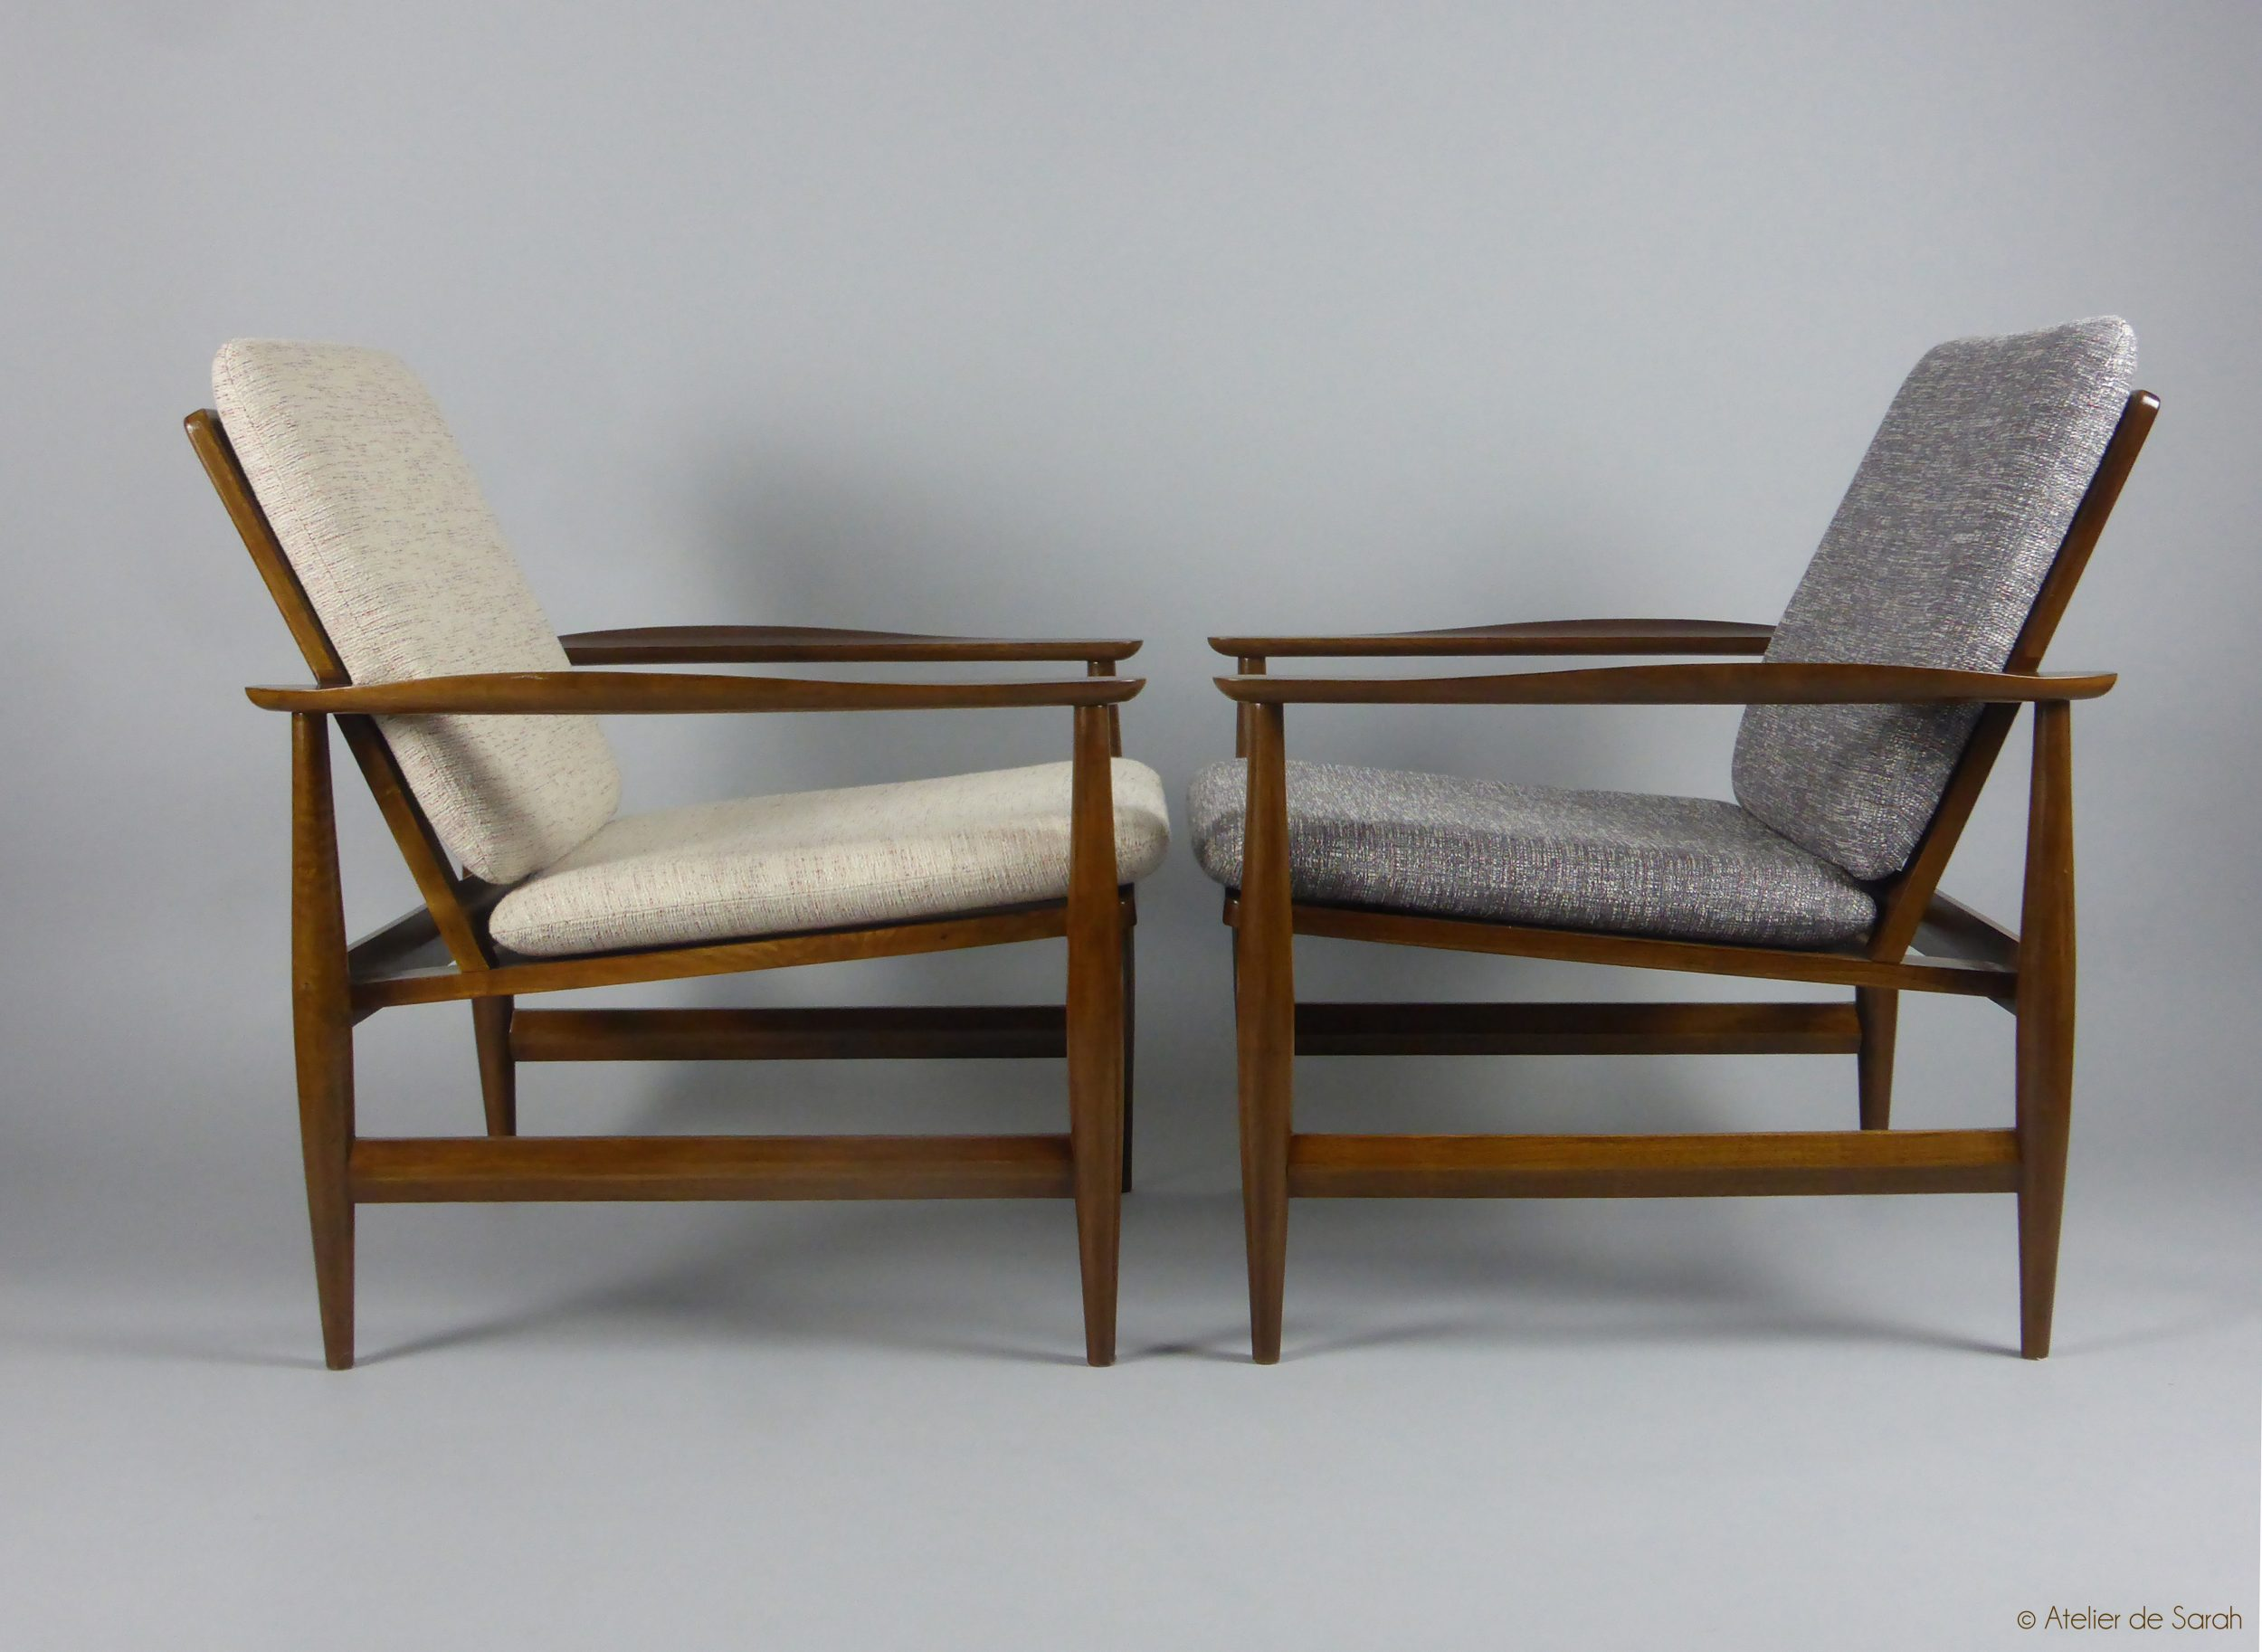 Angel-Wing-Danish-style-armchairs-with-Raf-Simons-cushions